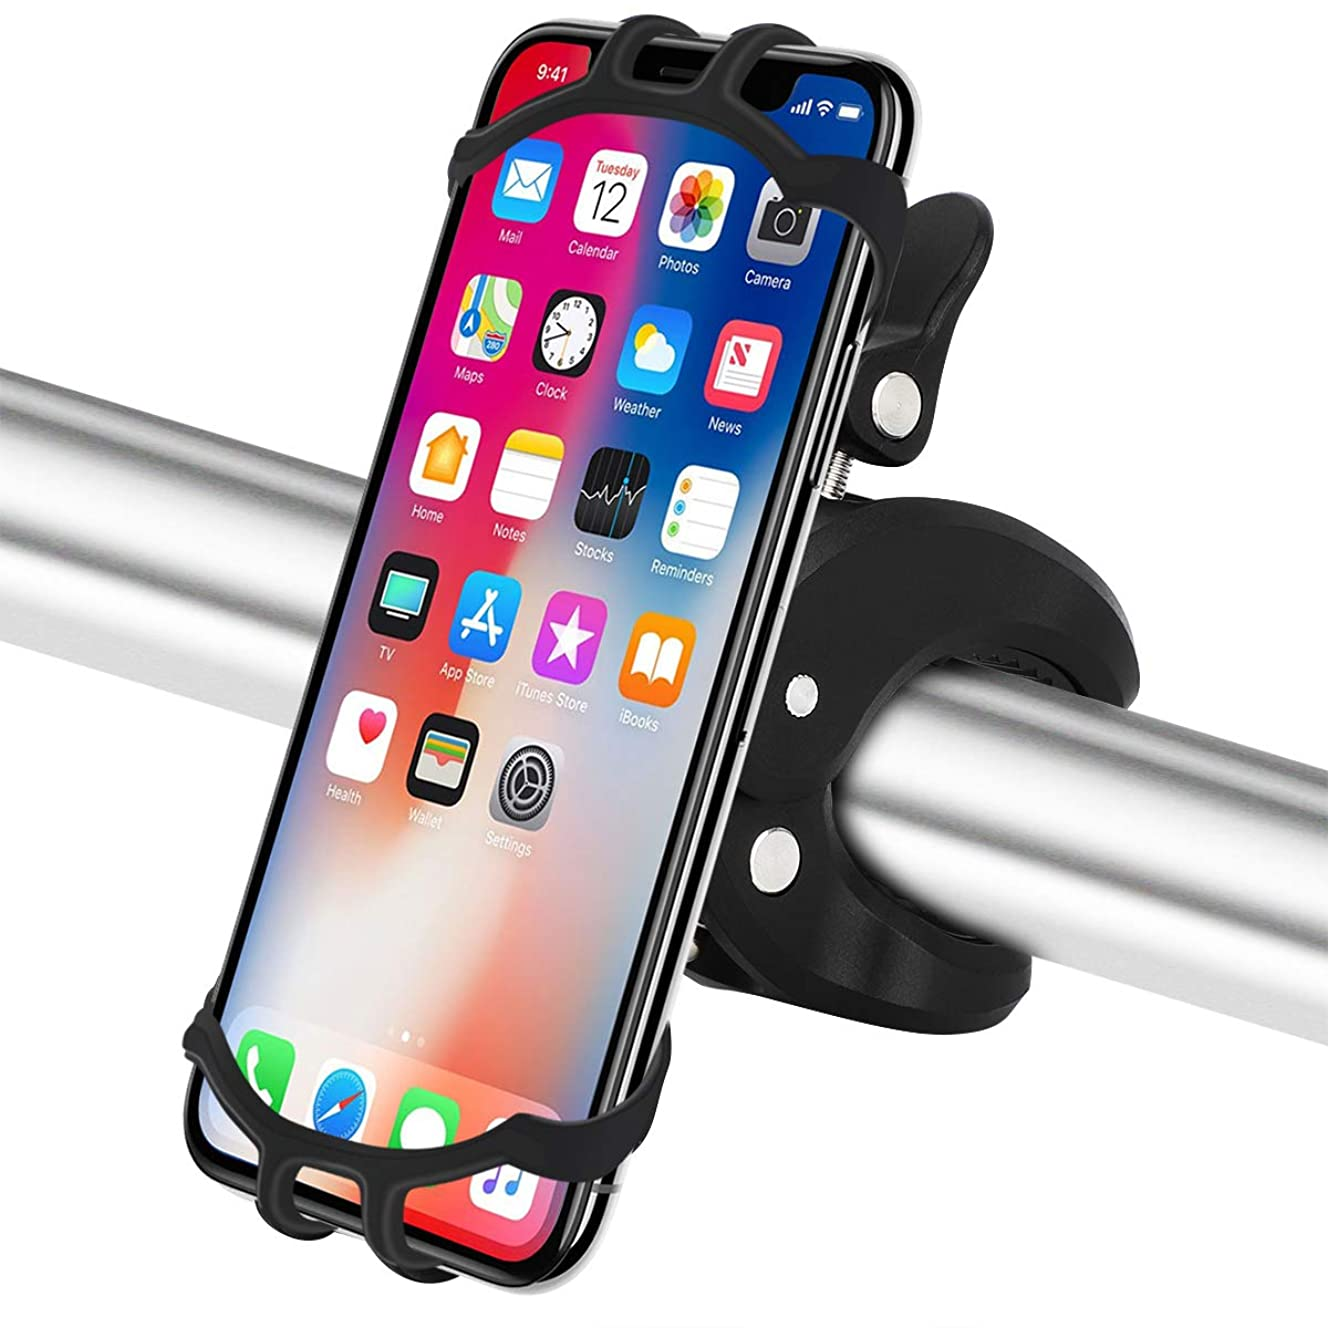 Bike Phone Mount,Universal Anti Shake Bicycle Phone Holder,Silicone Motorcycle Handlebar Mount with 360° Rotation for iPhone X, 8/8 Plus, 7, 6/6s Plus, All Galaxy, 4.0